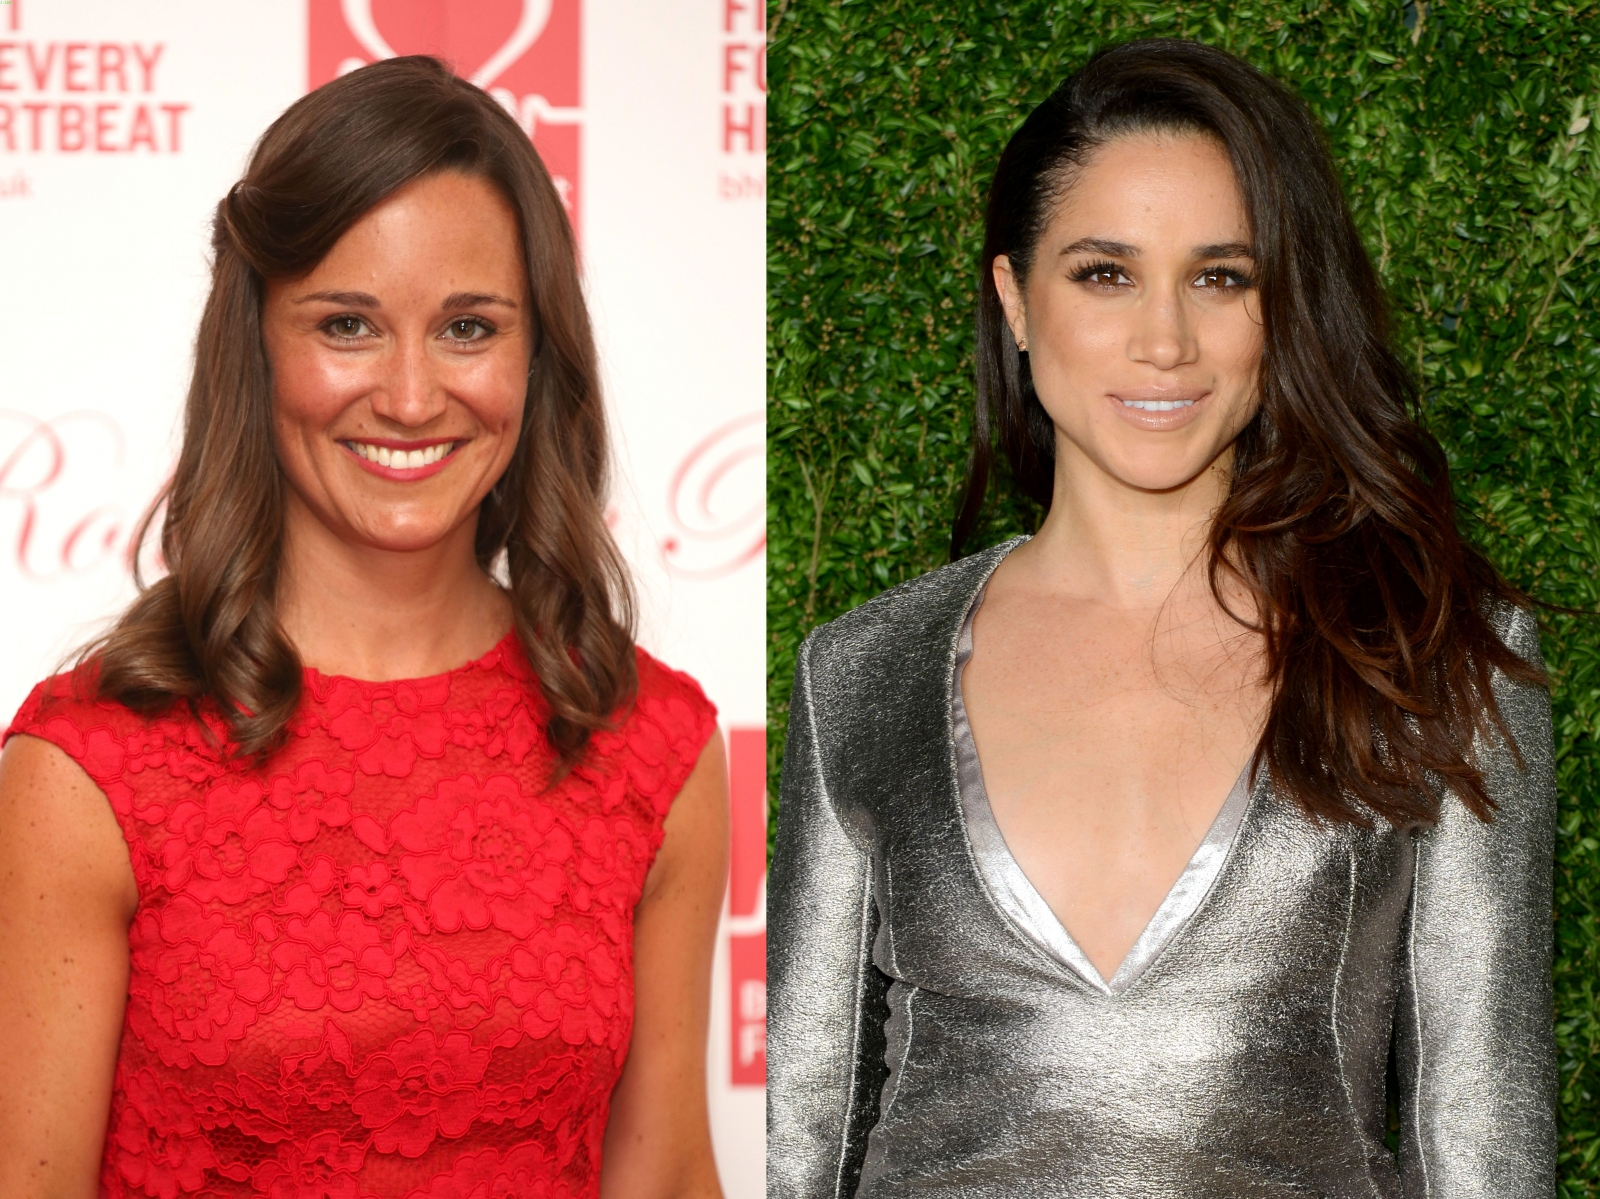 Pippa Middleton and Meghan Markle